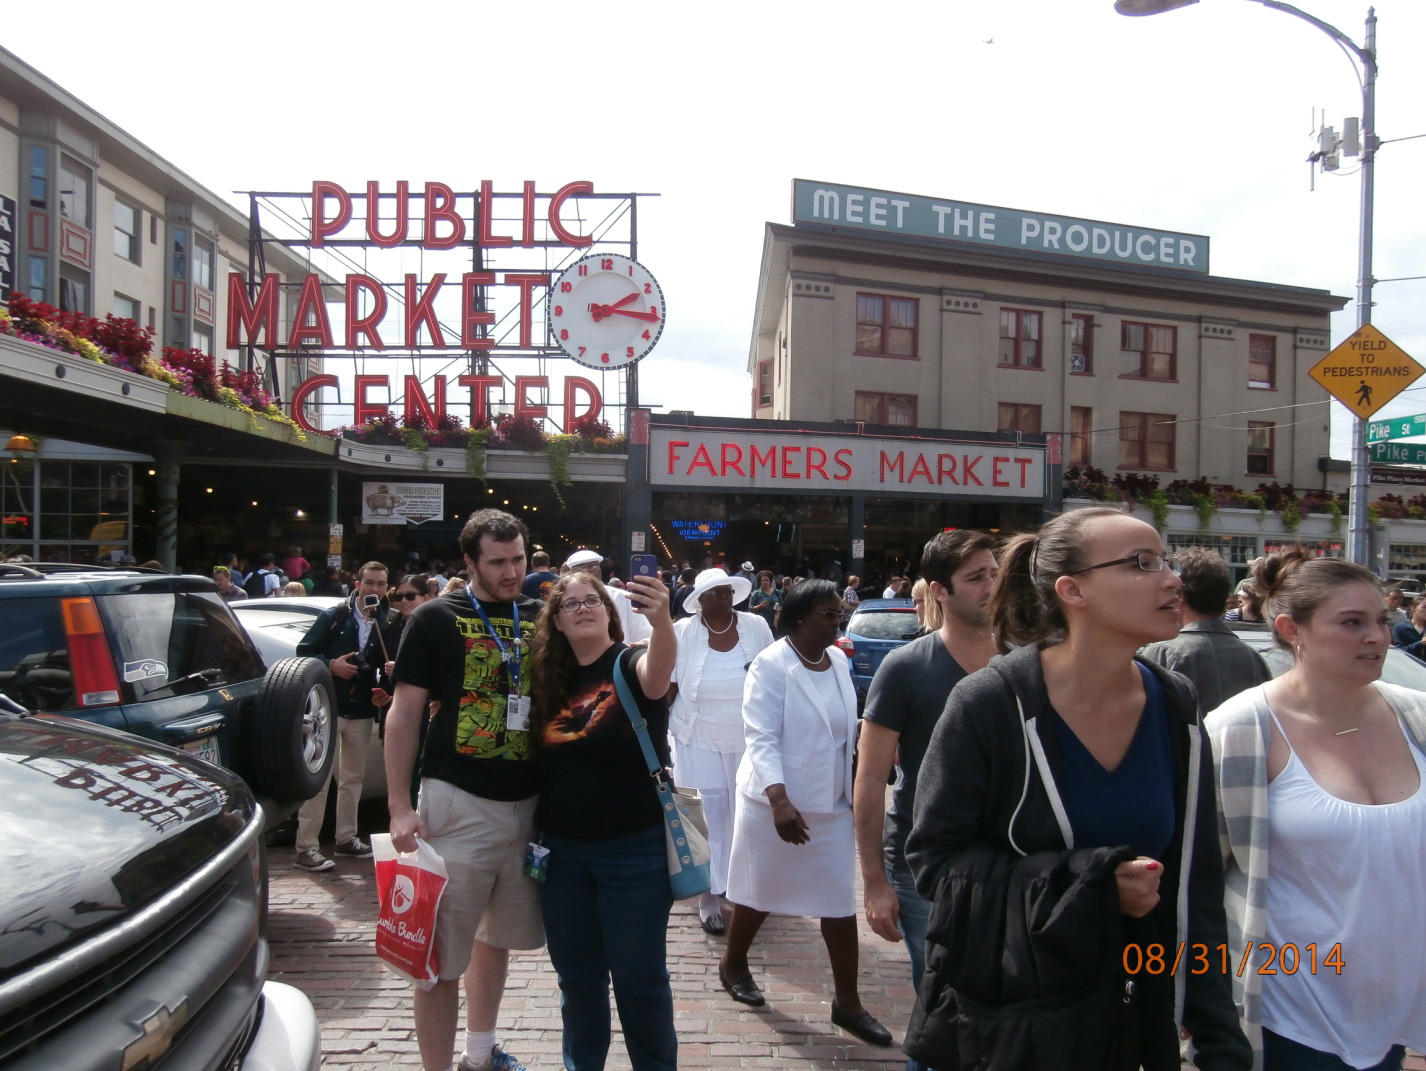 Pike Place Market in Seattle (Photo by Elias M. Ferrer)